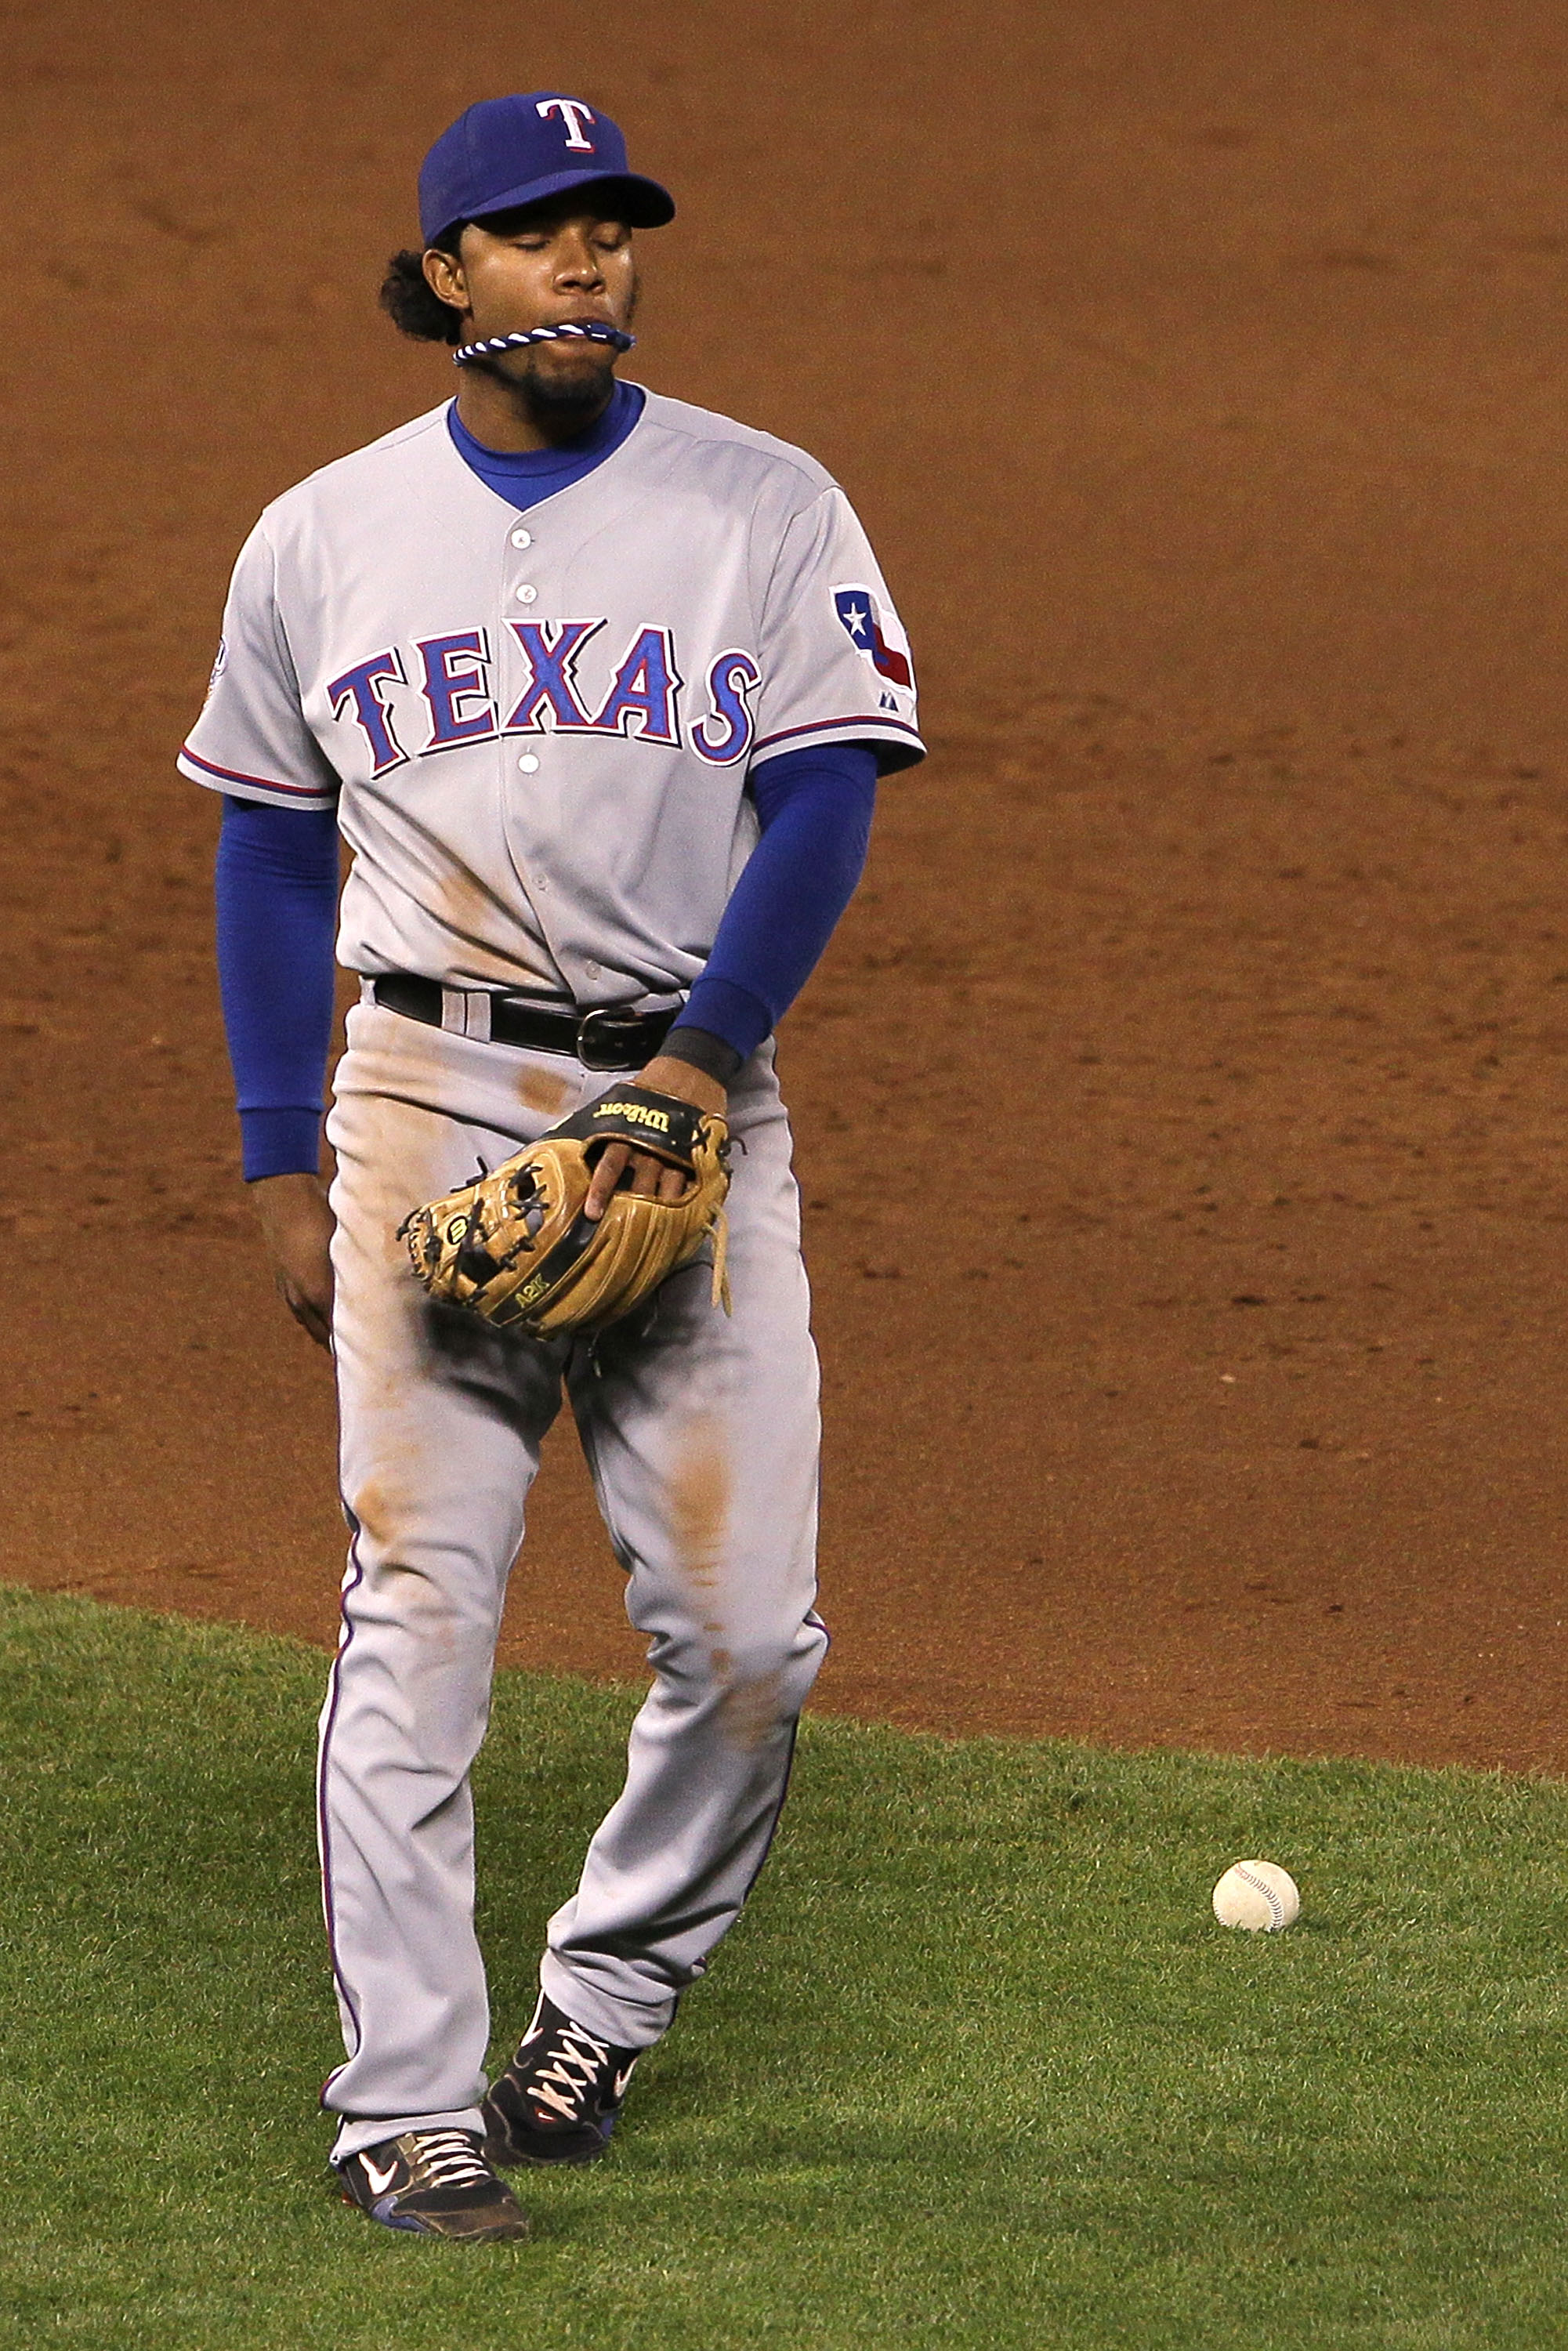 SAN FRANCISCO - OCTOBER 27:  Elvis Andrus #1 of the Texas Rangers reacts after making an error in the fifth inning of Game One of the 2010 MLB World Series at AT&T Park on October 27, 2010 in San Francisco, California.  (Photo by Justin Sullivan/Getty Ima